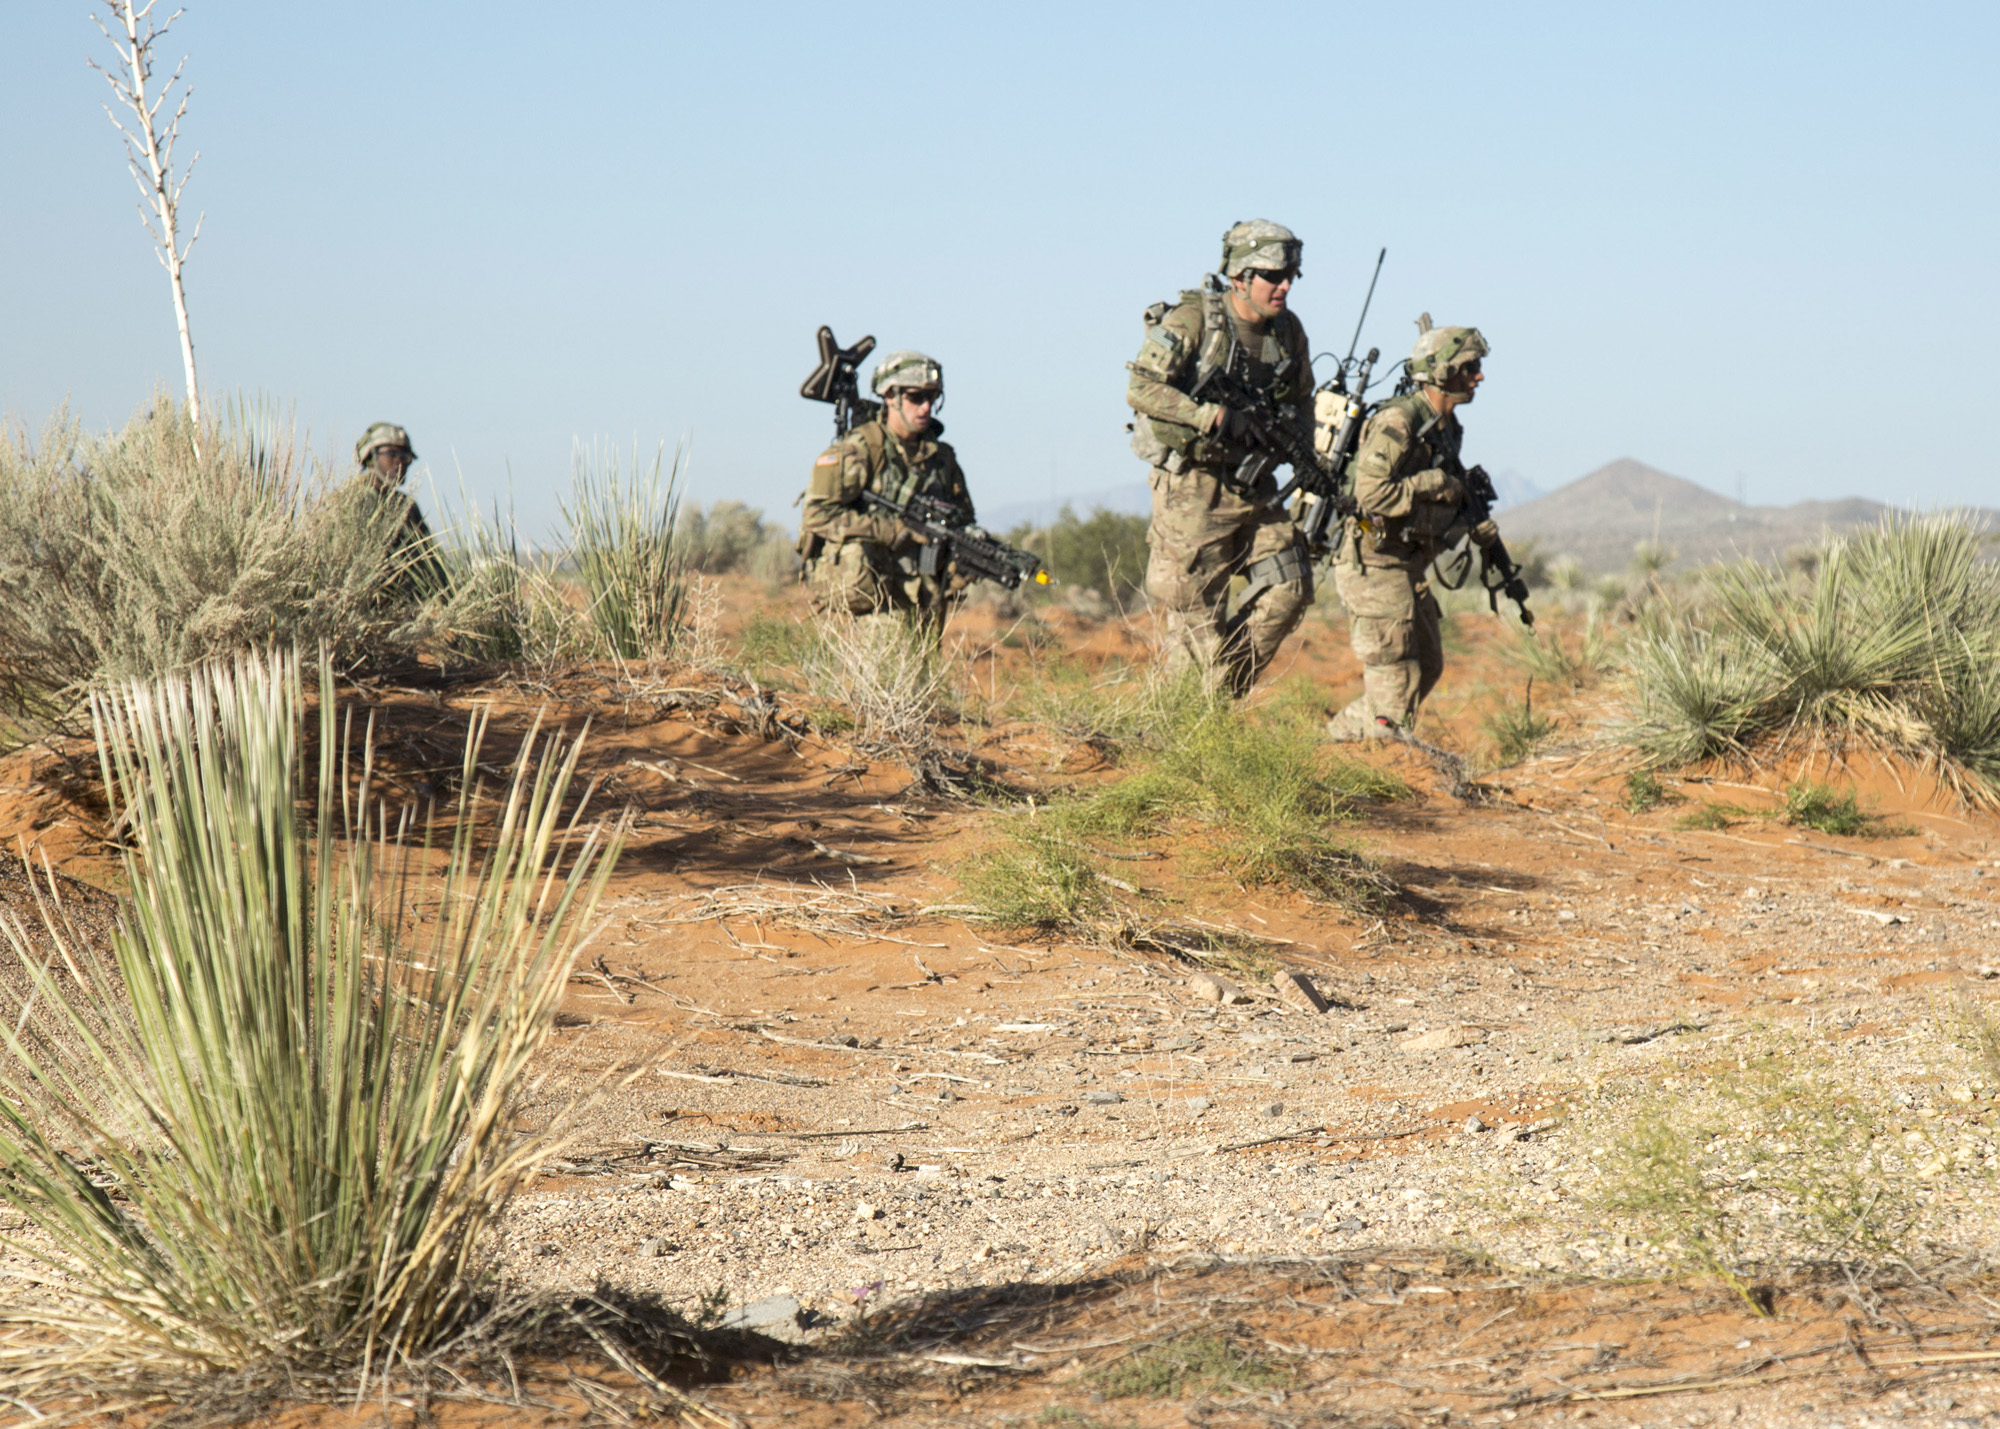 Army Infantrymen assigned to the 2nd Brigade Combat Team, 1st Armored Division assault an objective during the Army Warfighting Assessment (AWA) 17.1 at Fort Bliss, Texas, on Oct. 23, 2016. The Army Rapid Capabilities Office used the AWA, the first in what will be a series of annual events, to gather Soldier feedback on current and emerging electronic warfare and cyber technologies—part of an Armywide push to focus scarce resources where they will give Soldiers a true edge in the fight against a peer adversary. (U.S. Army photo by Spc. Tianna S. Wilson)